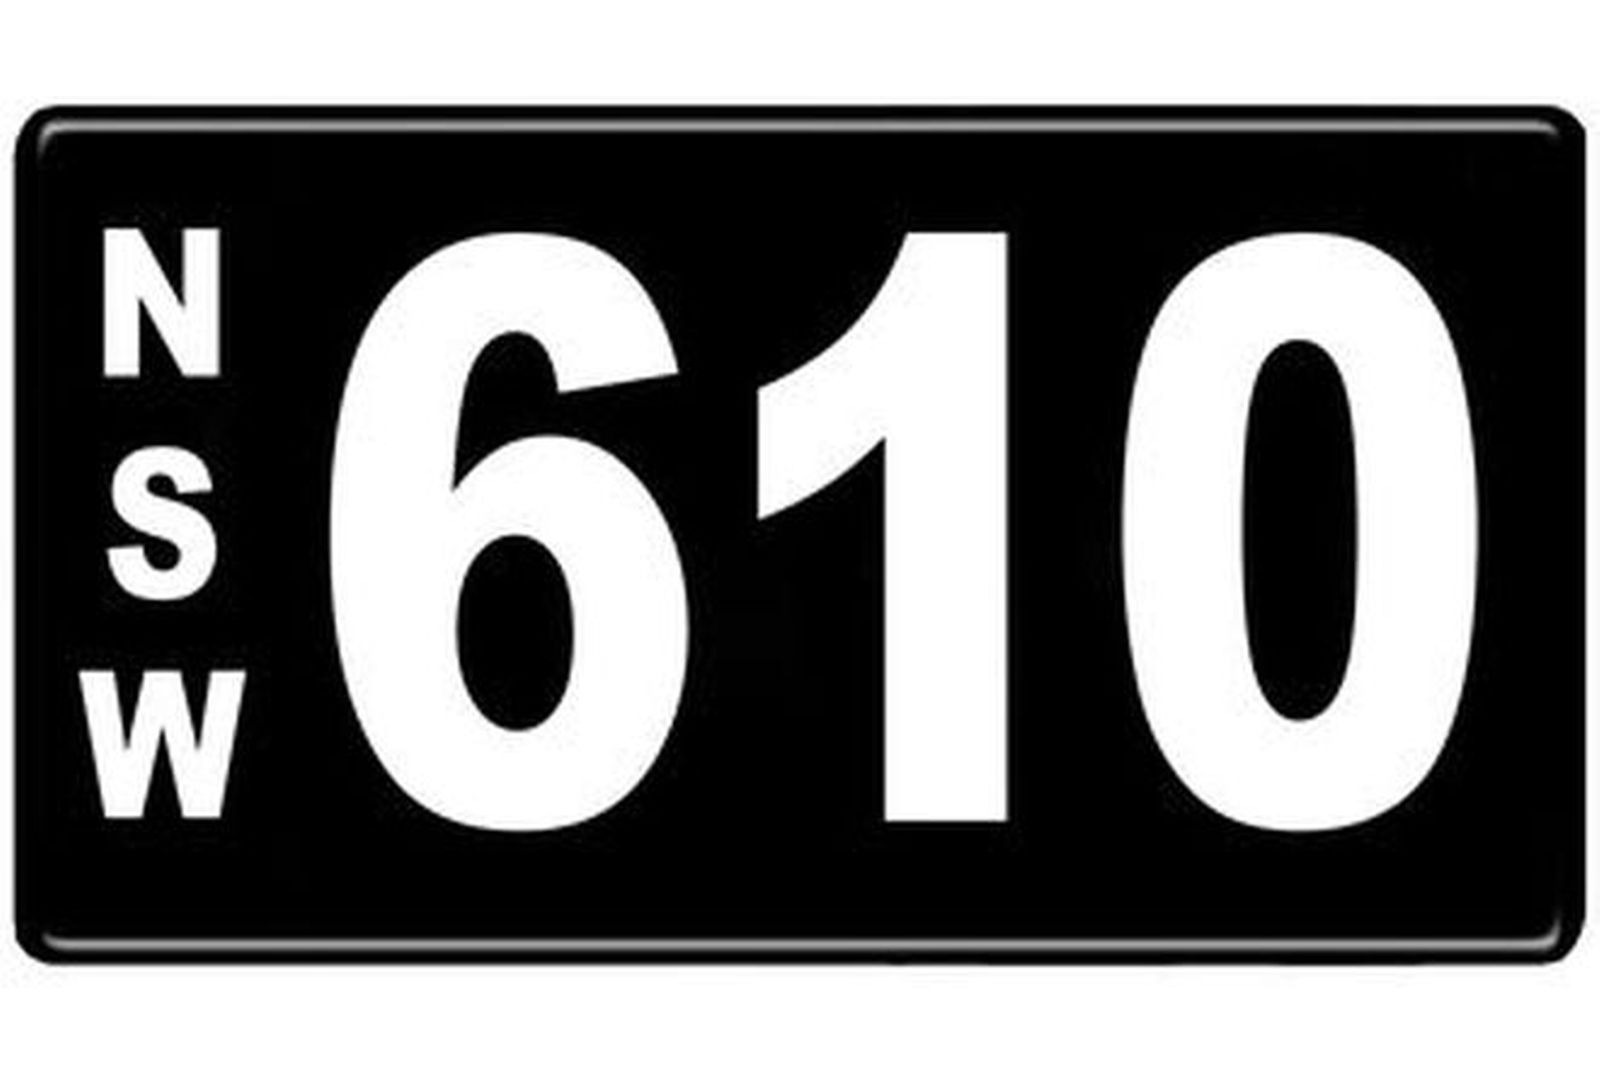 Number Plates - NSW Numerical Number Plates '610'